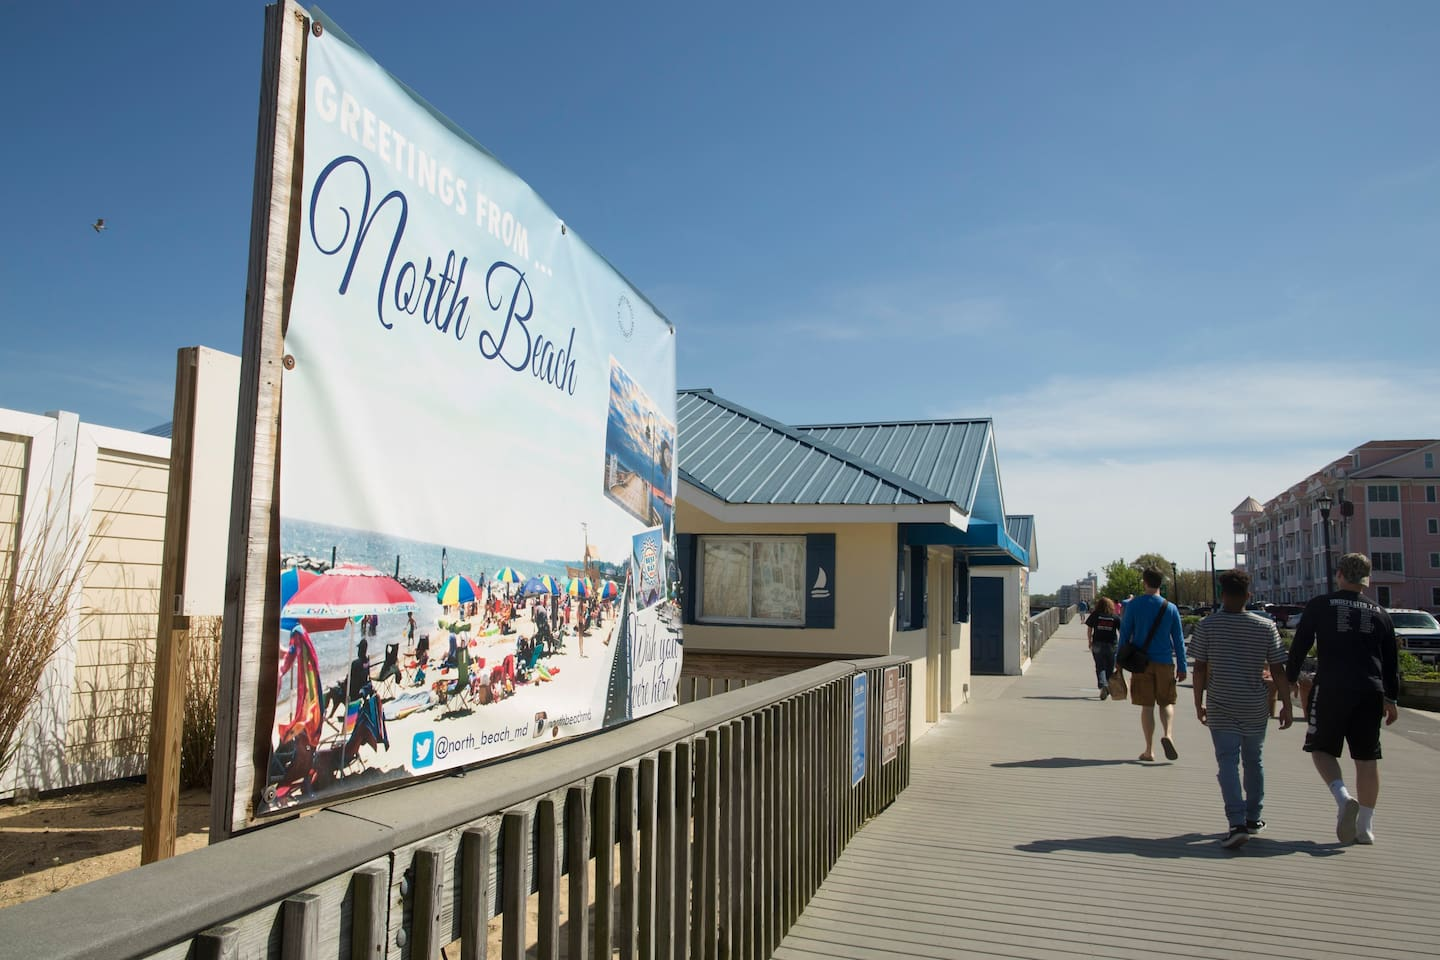 North Beach is a five minute drive away! And we have a family beach pass